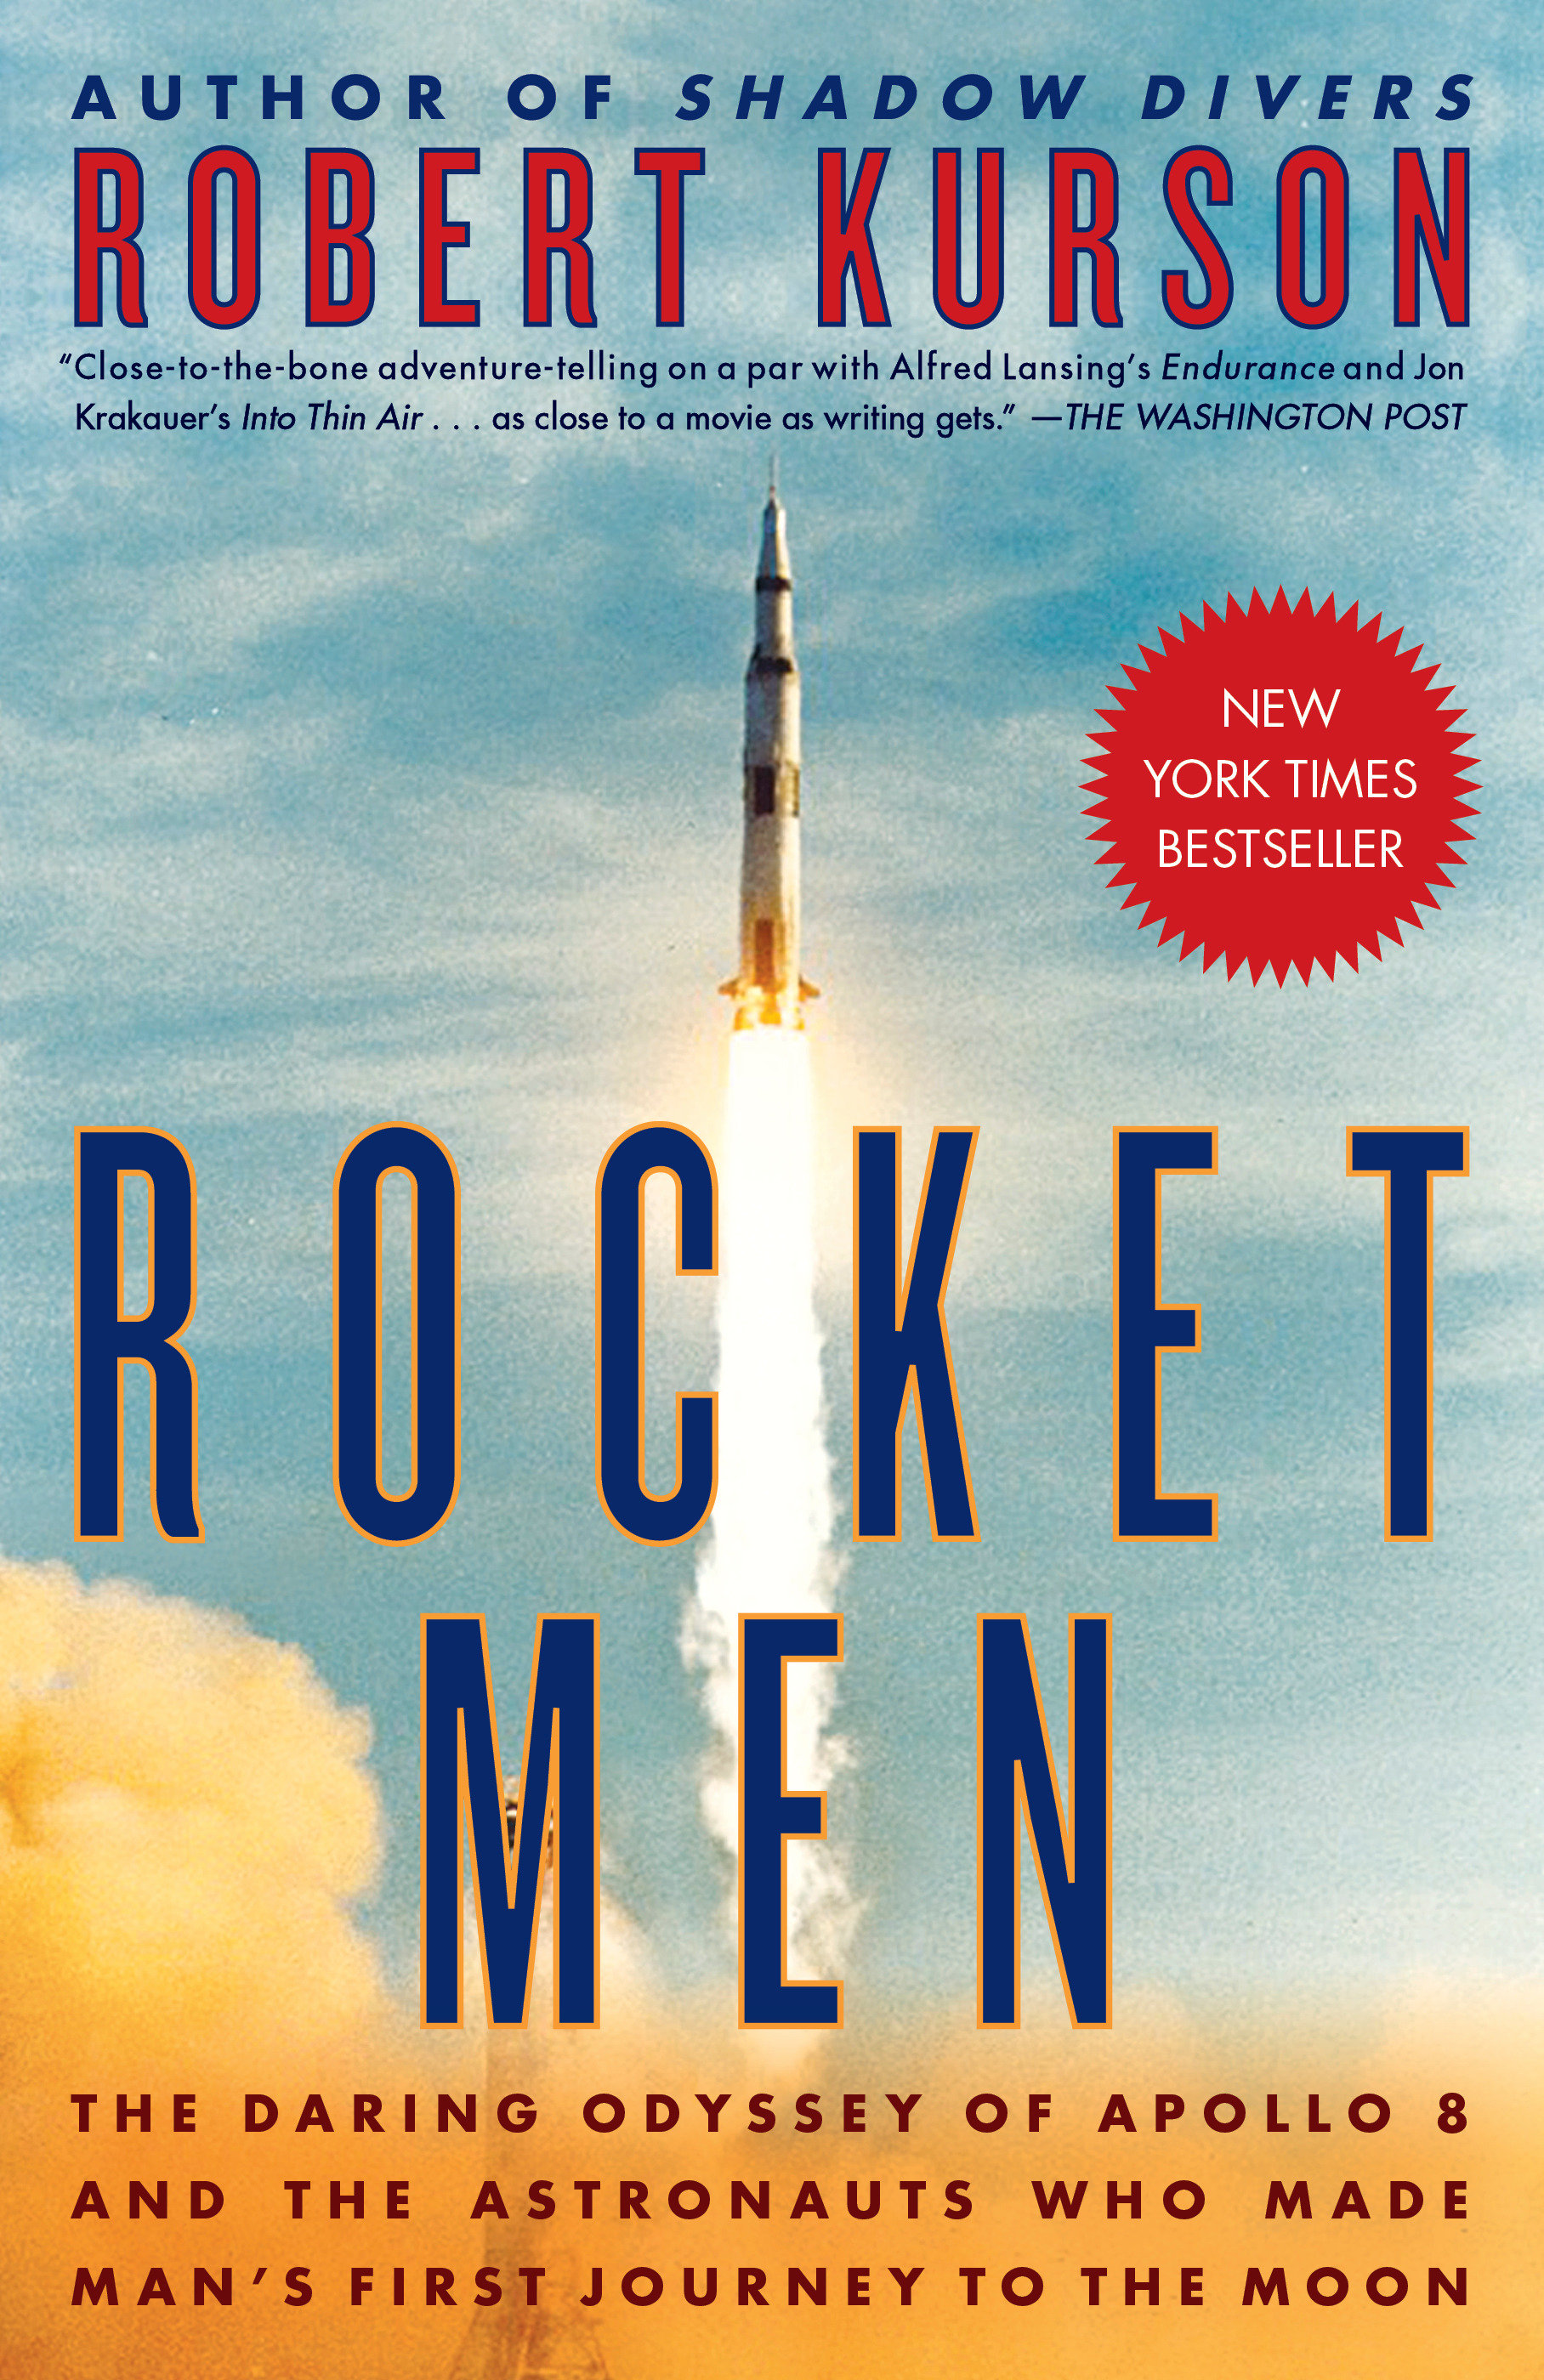 Rocket Men the daring odyssey of Apollo 8 and the astronauts who made man's first journey to the Moon cover image